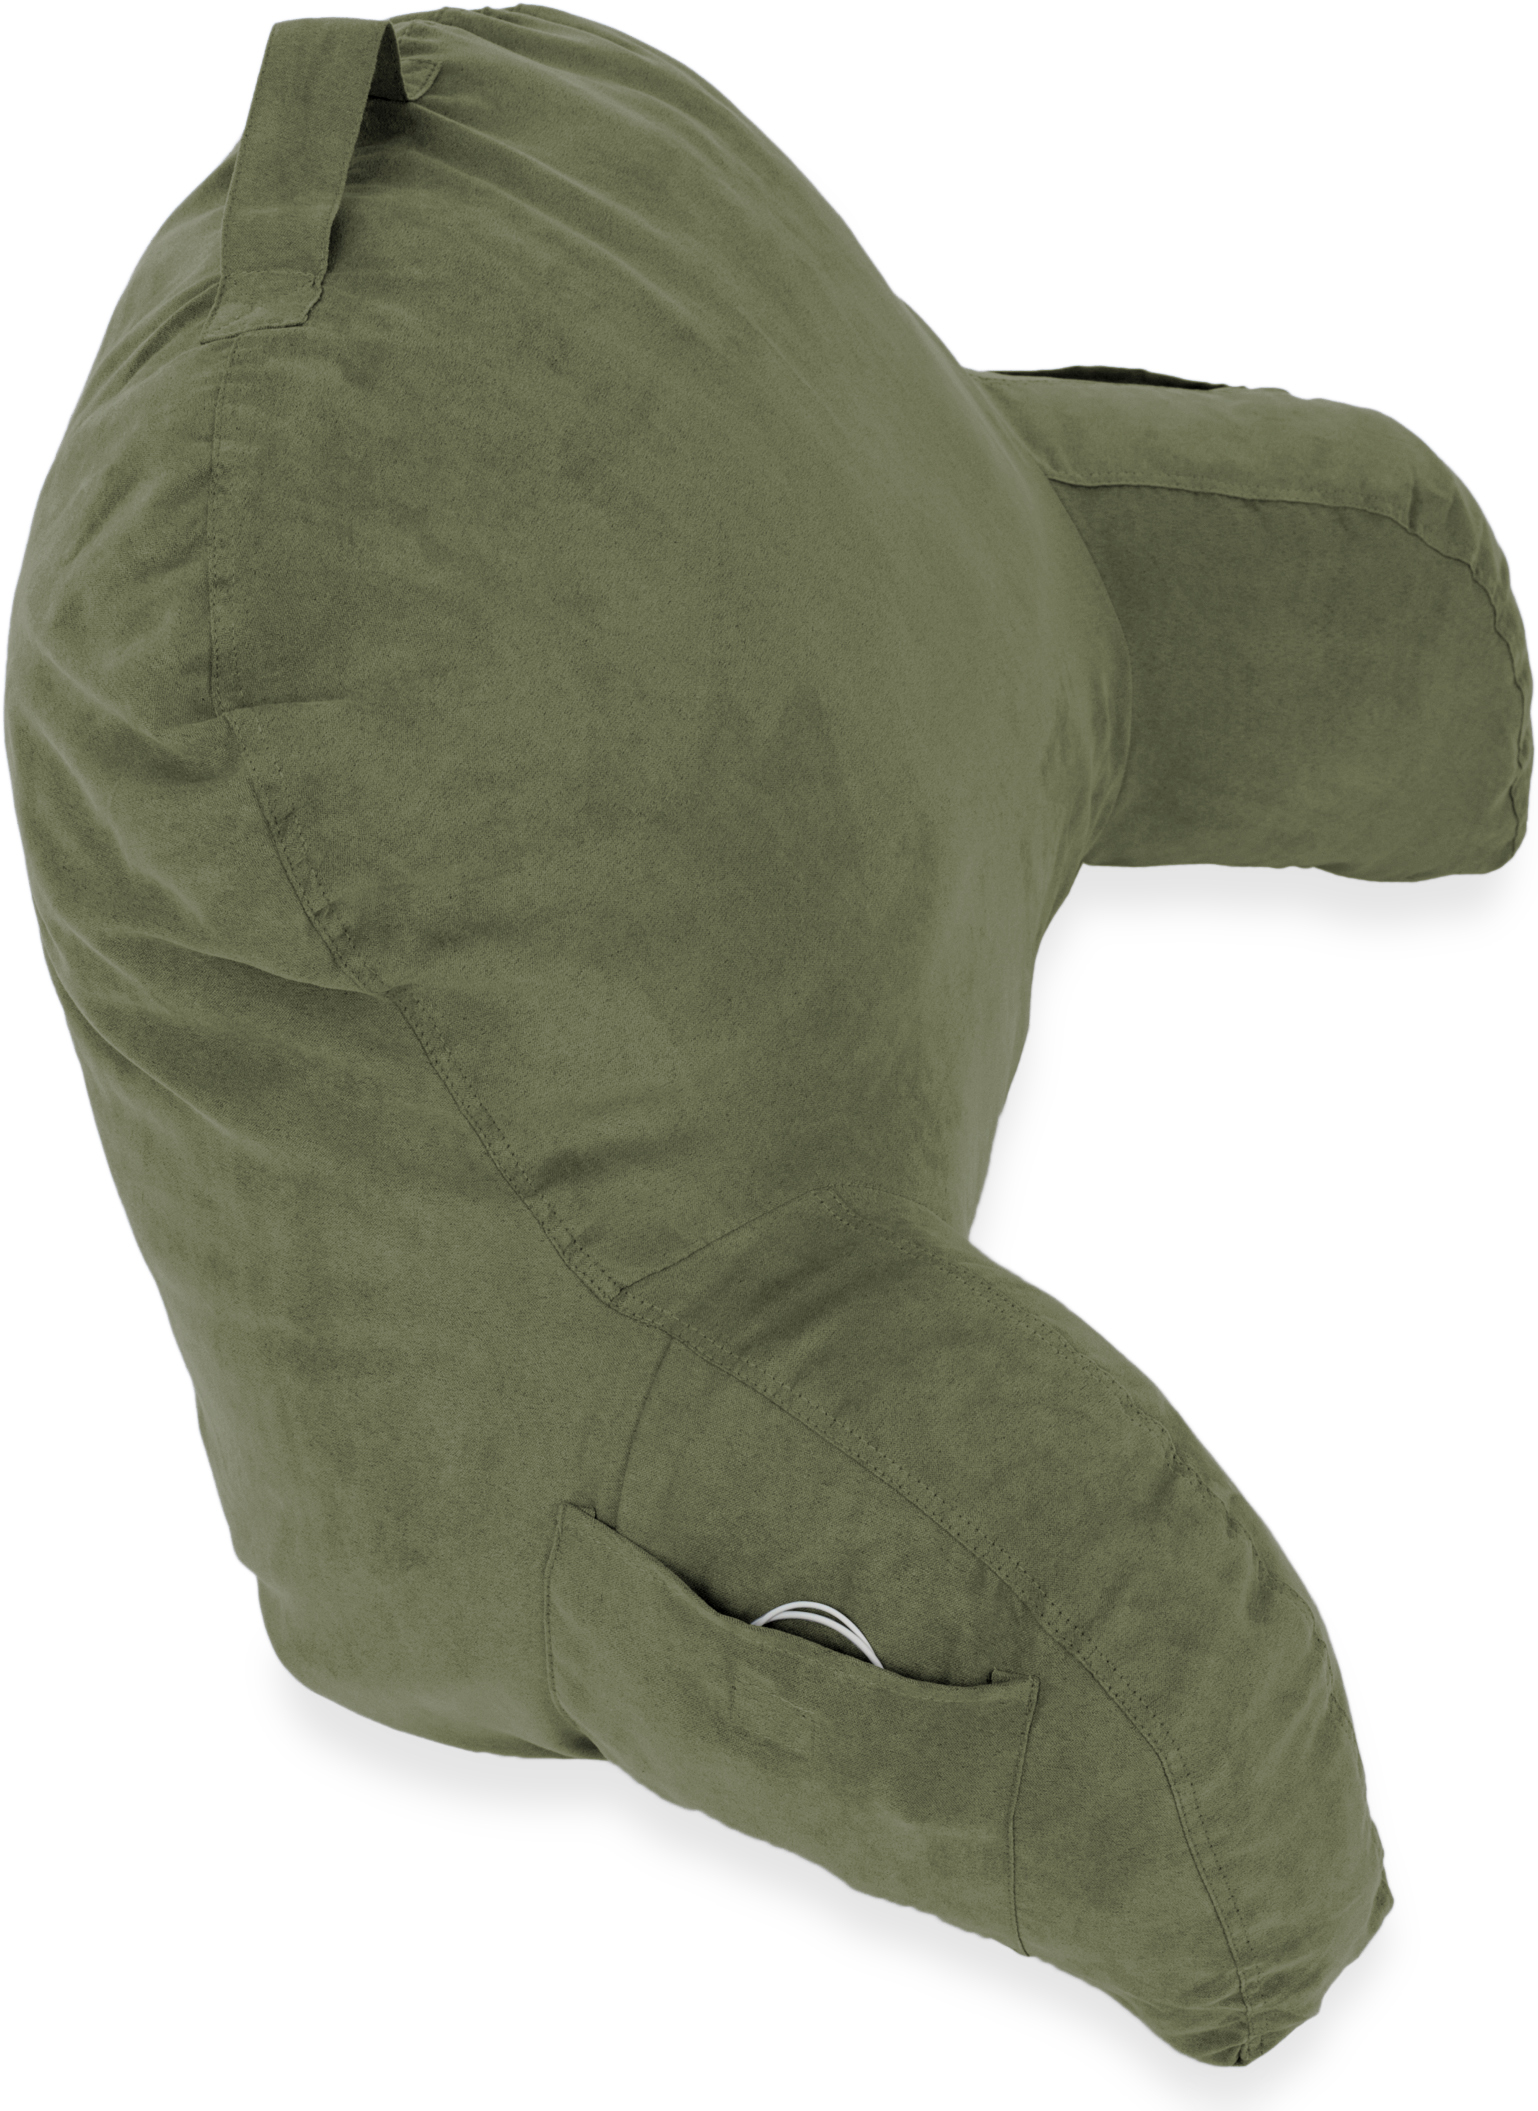 Microsuede-Bed-Rest-Reading-and-Bed-Rest-Lounger-Bed-Pillow thumbnail 18